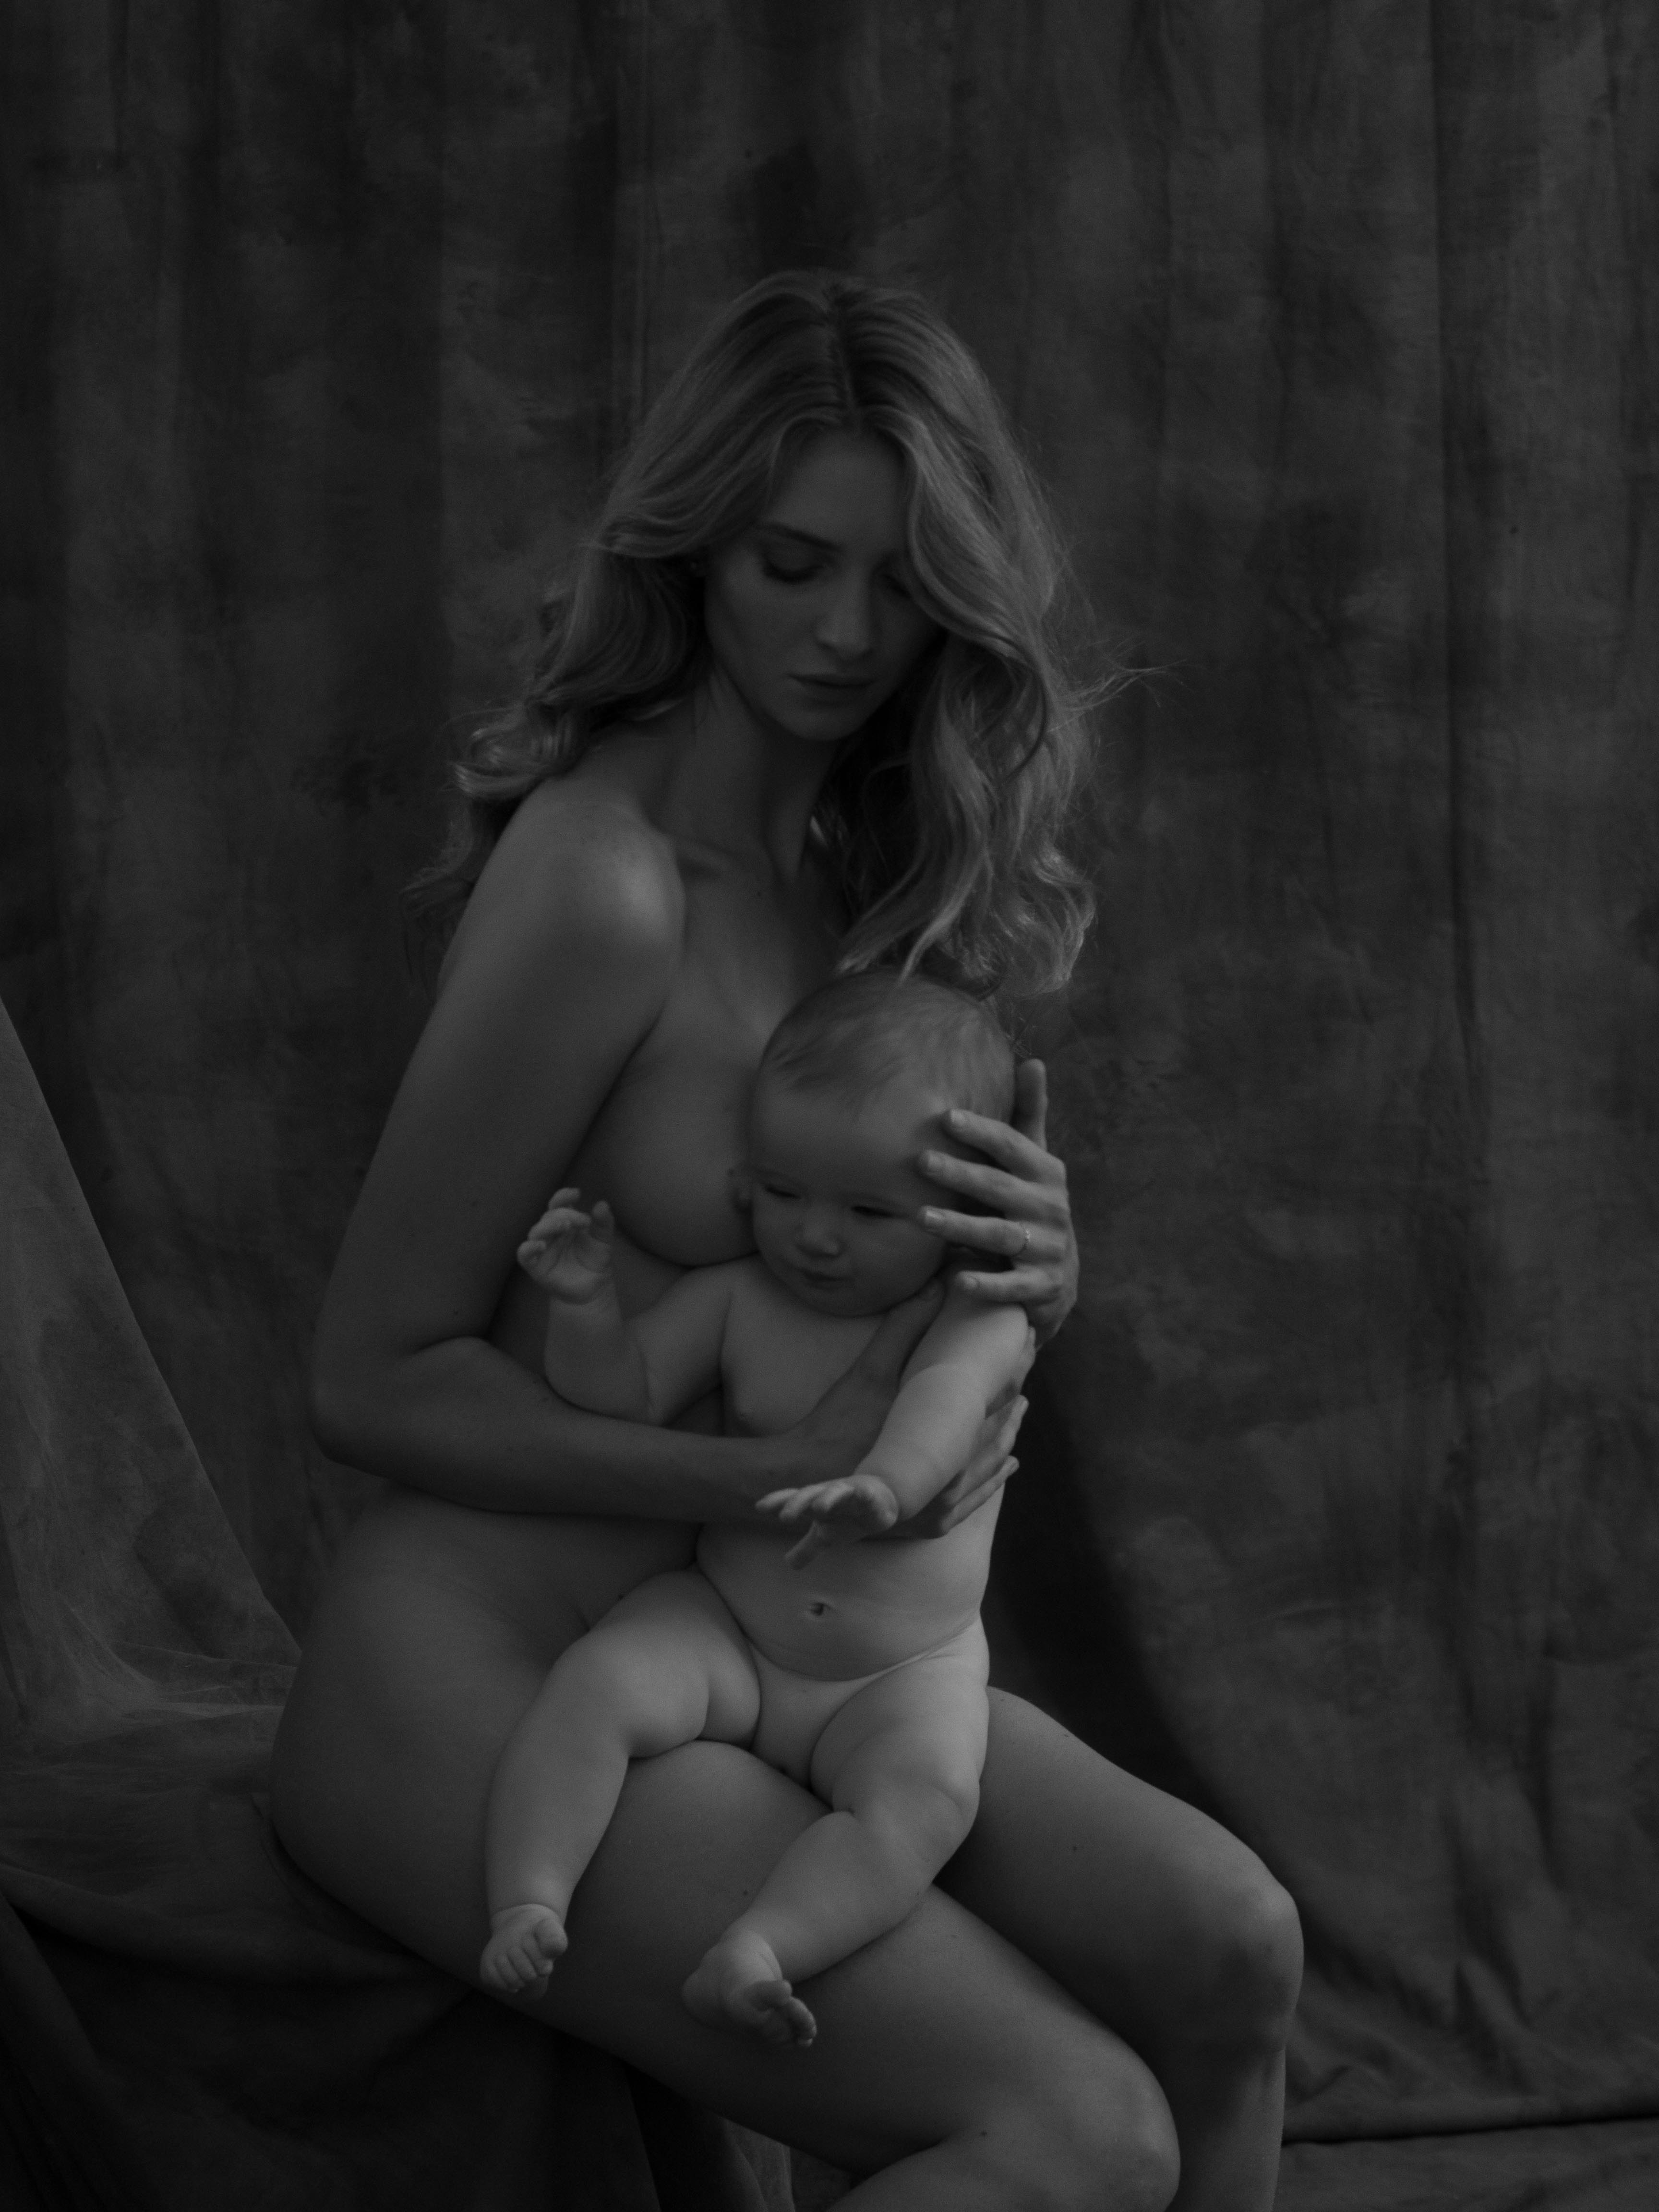 Nude mother and baby portraits photographer